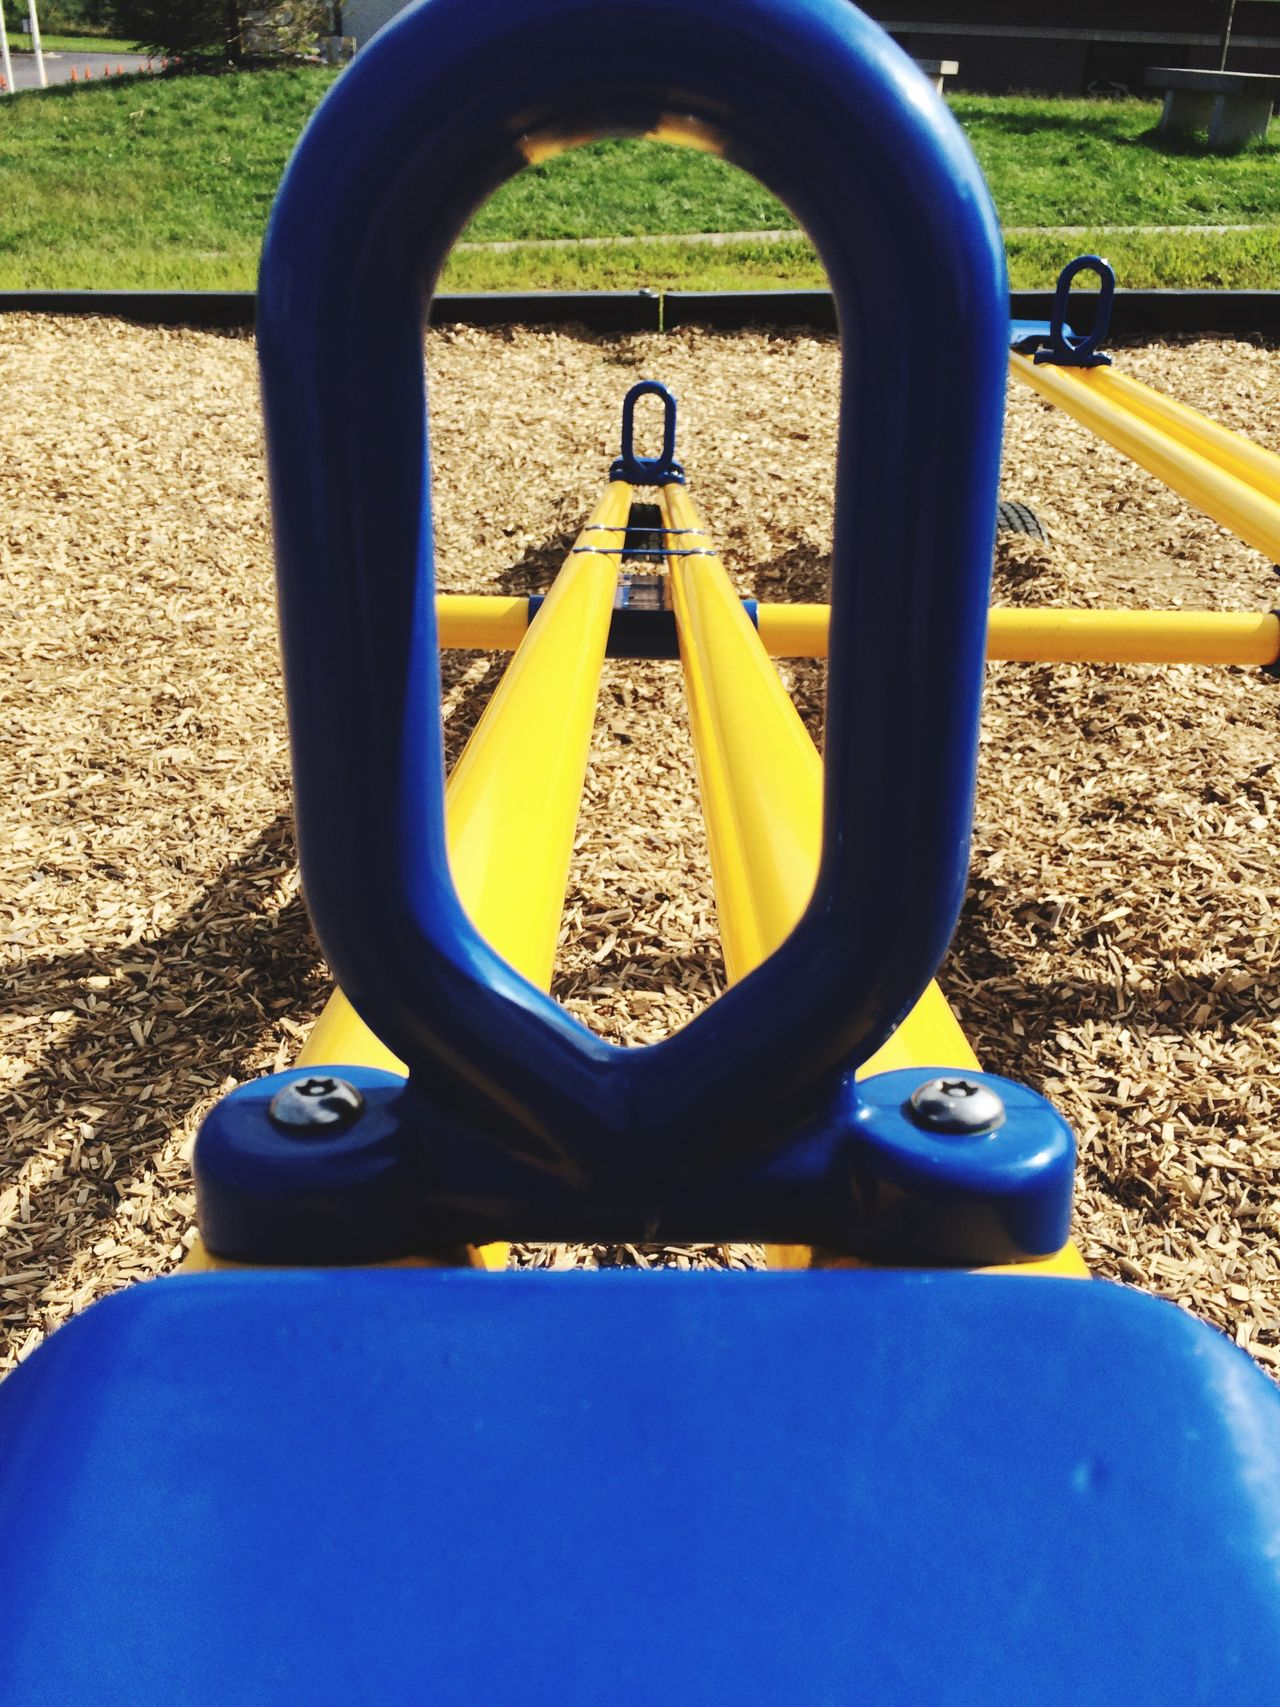 Teeter totter Playground Teeter-totter Play Play Ground Blue Yellow Kids Toys Fun Playground Equipment Playgrounds Playground Structure Seesaw See Saw Metal Looking Through